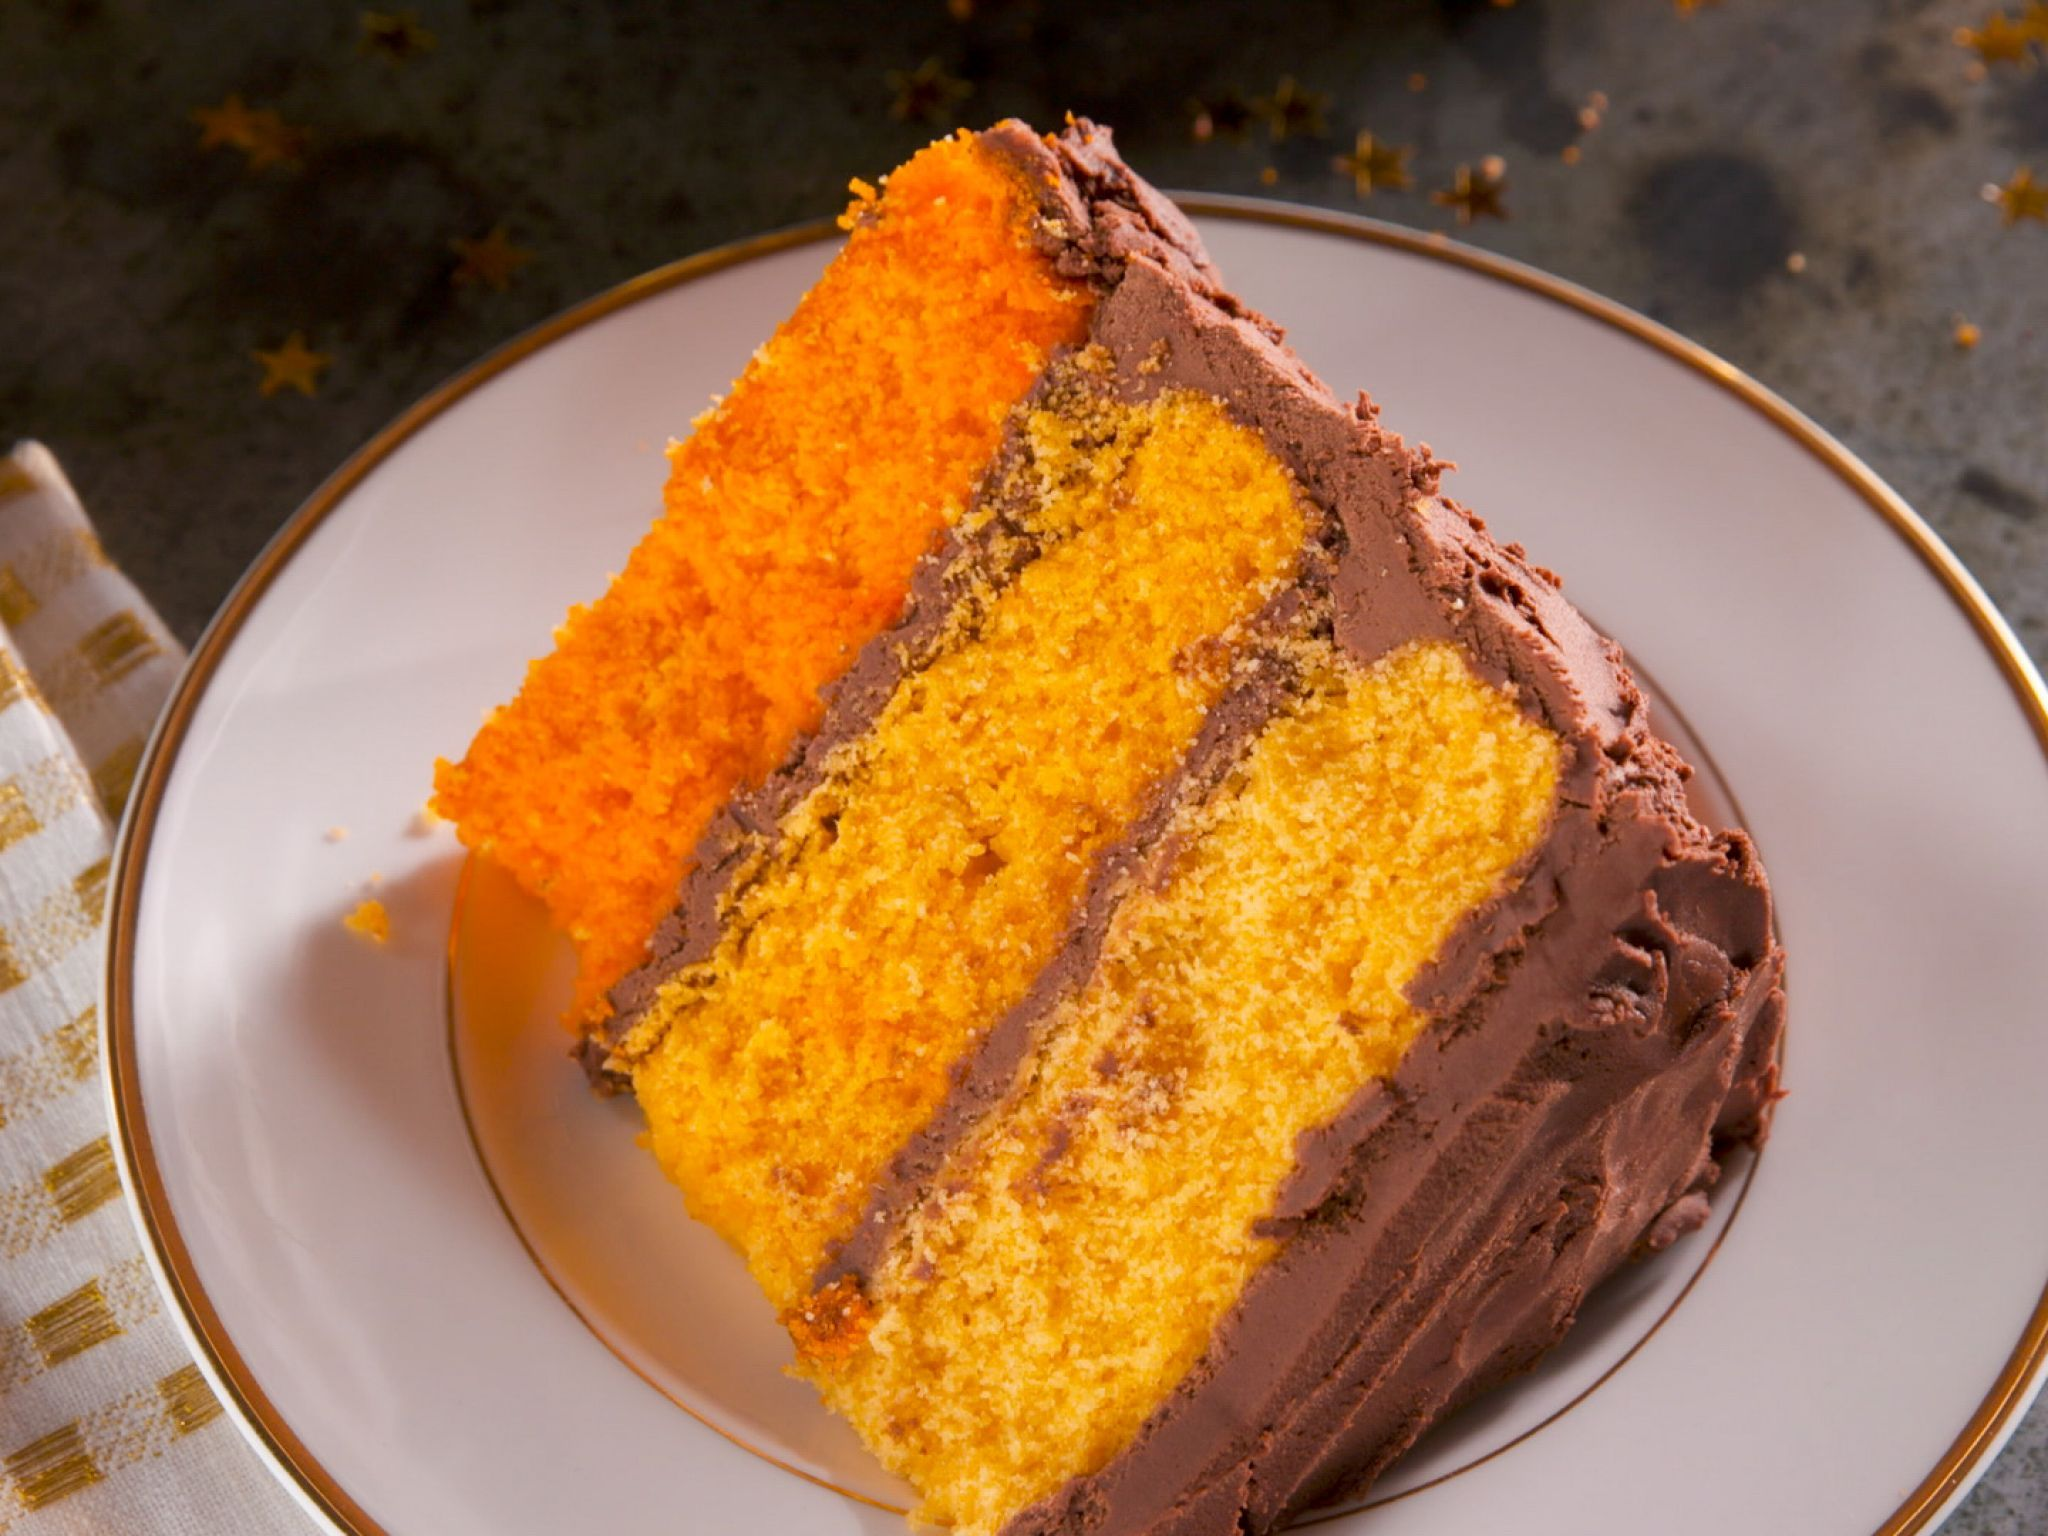 Awe Inspiring Orange Ombre Birthday Cake With Chocolate Frosting Recipe With Birthday Cards Printable Trancafe Filternl